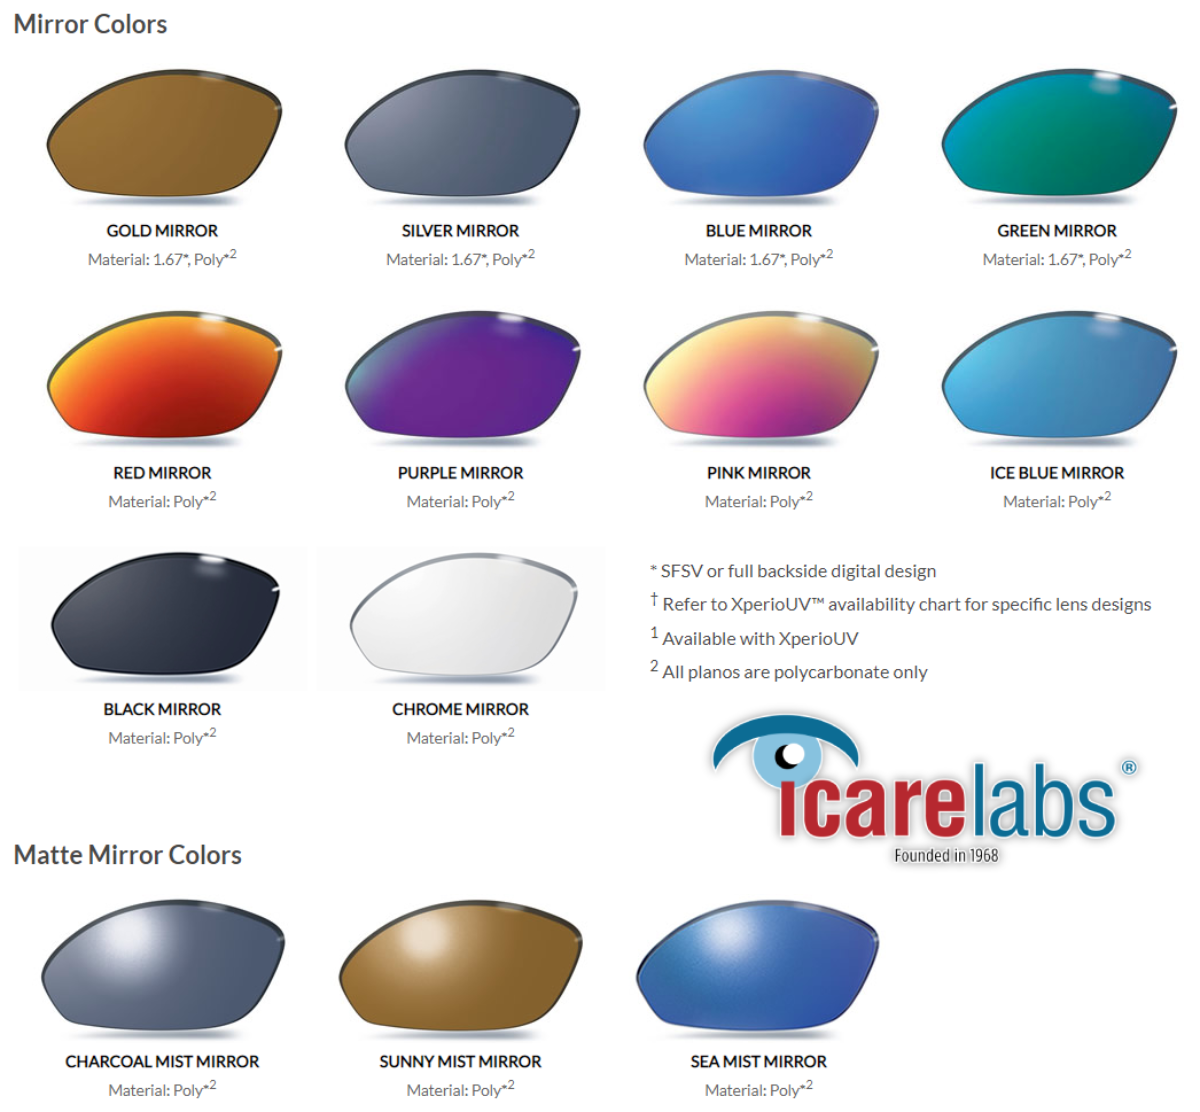 KBco poly and 1.67 mirror lens options processed in-house by IcareLabs